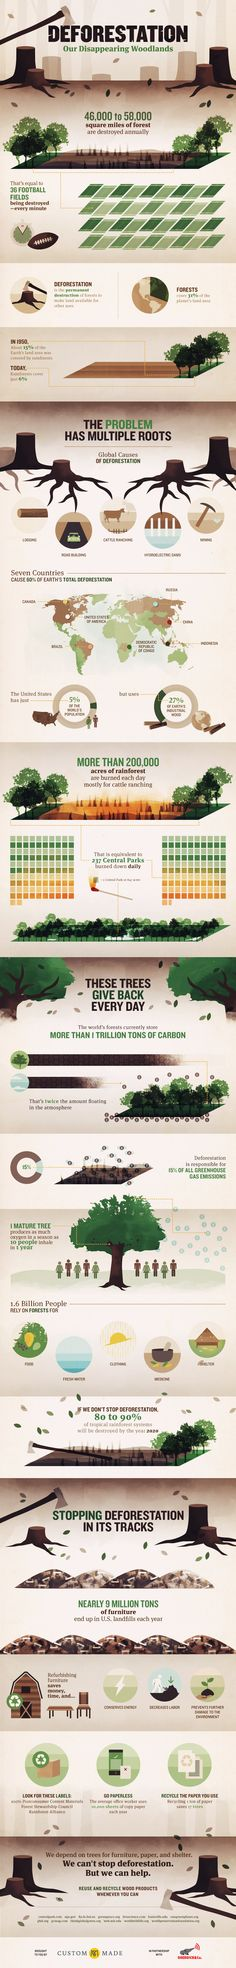 Deforestation. Not just the problem, but a few solutions.